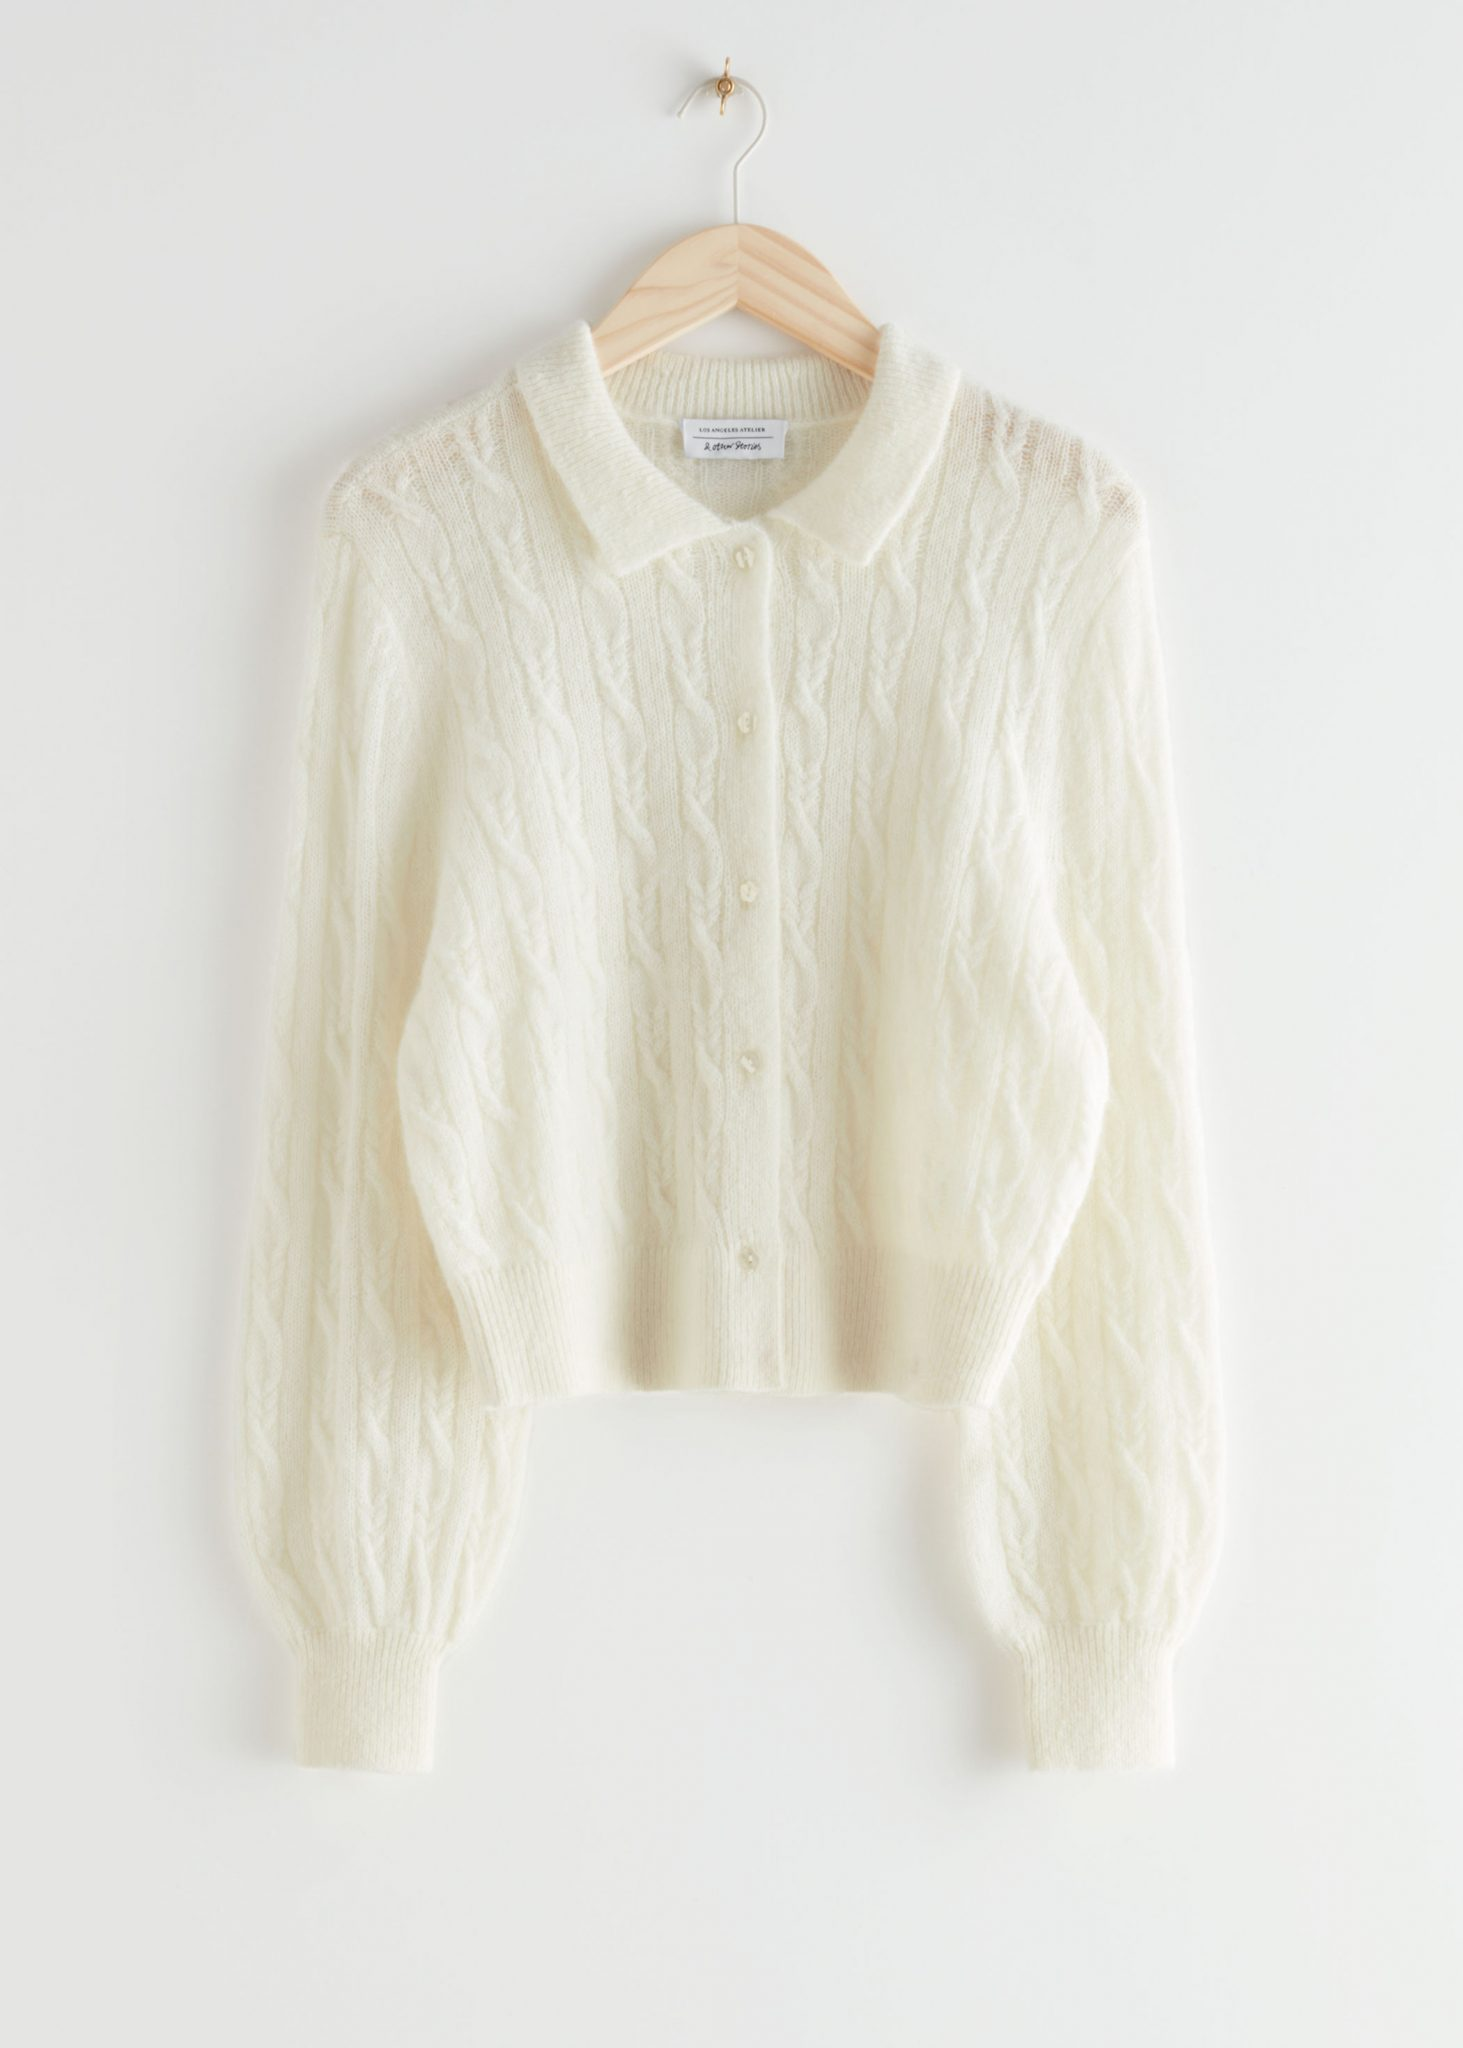 Alpaca Blend Cable Knit Cardigan, & Other Stories, £65.00